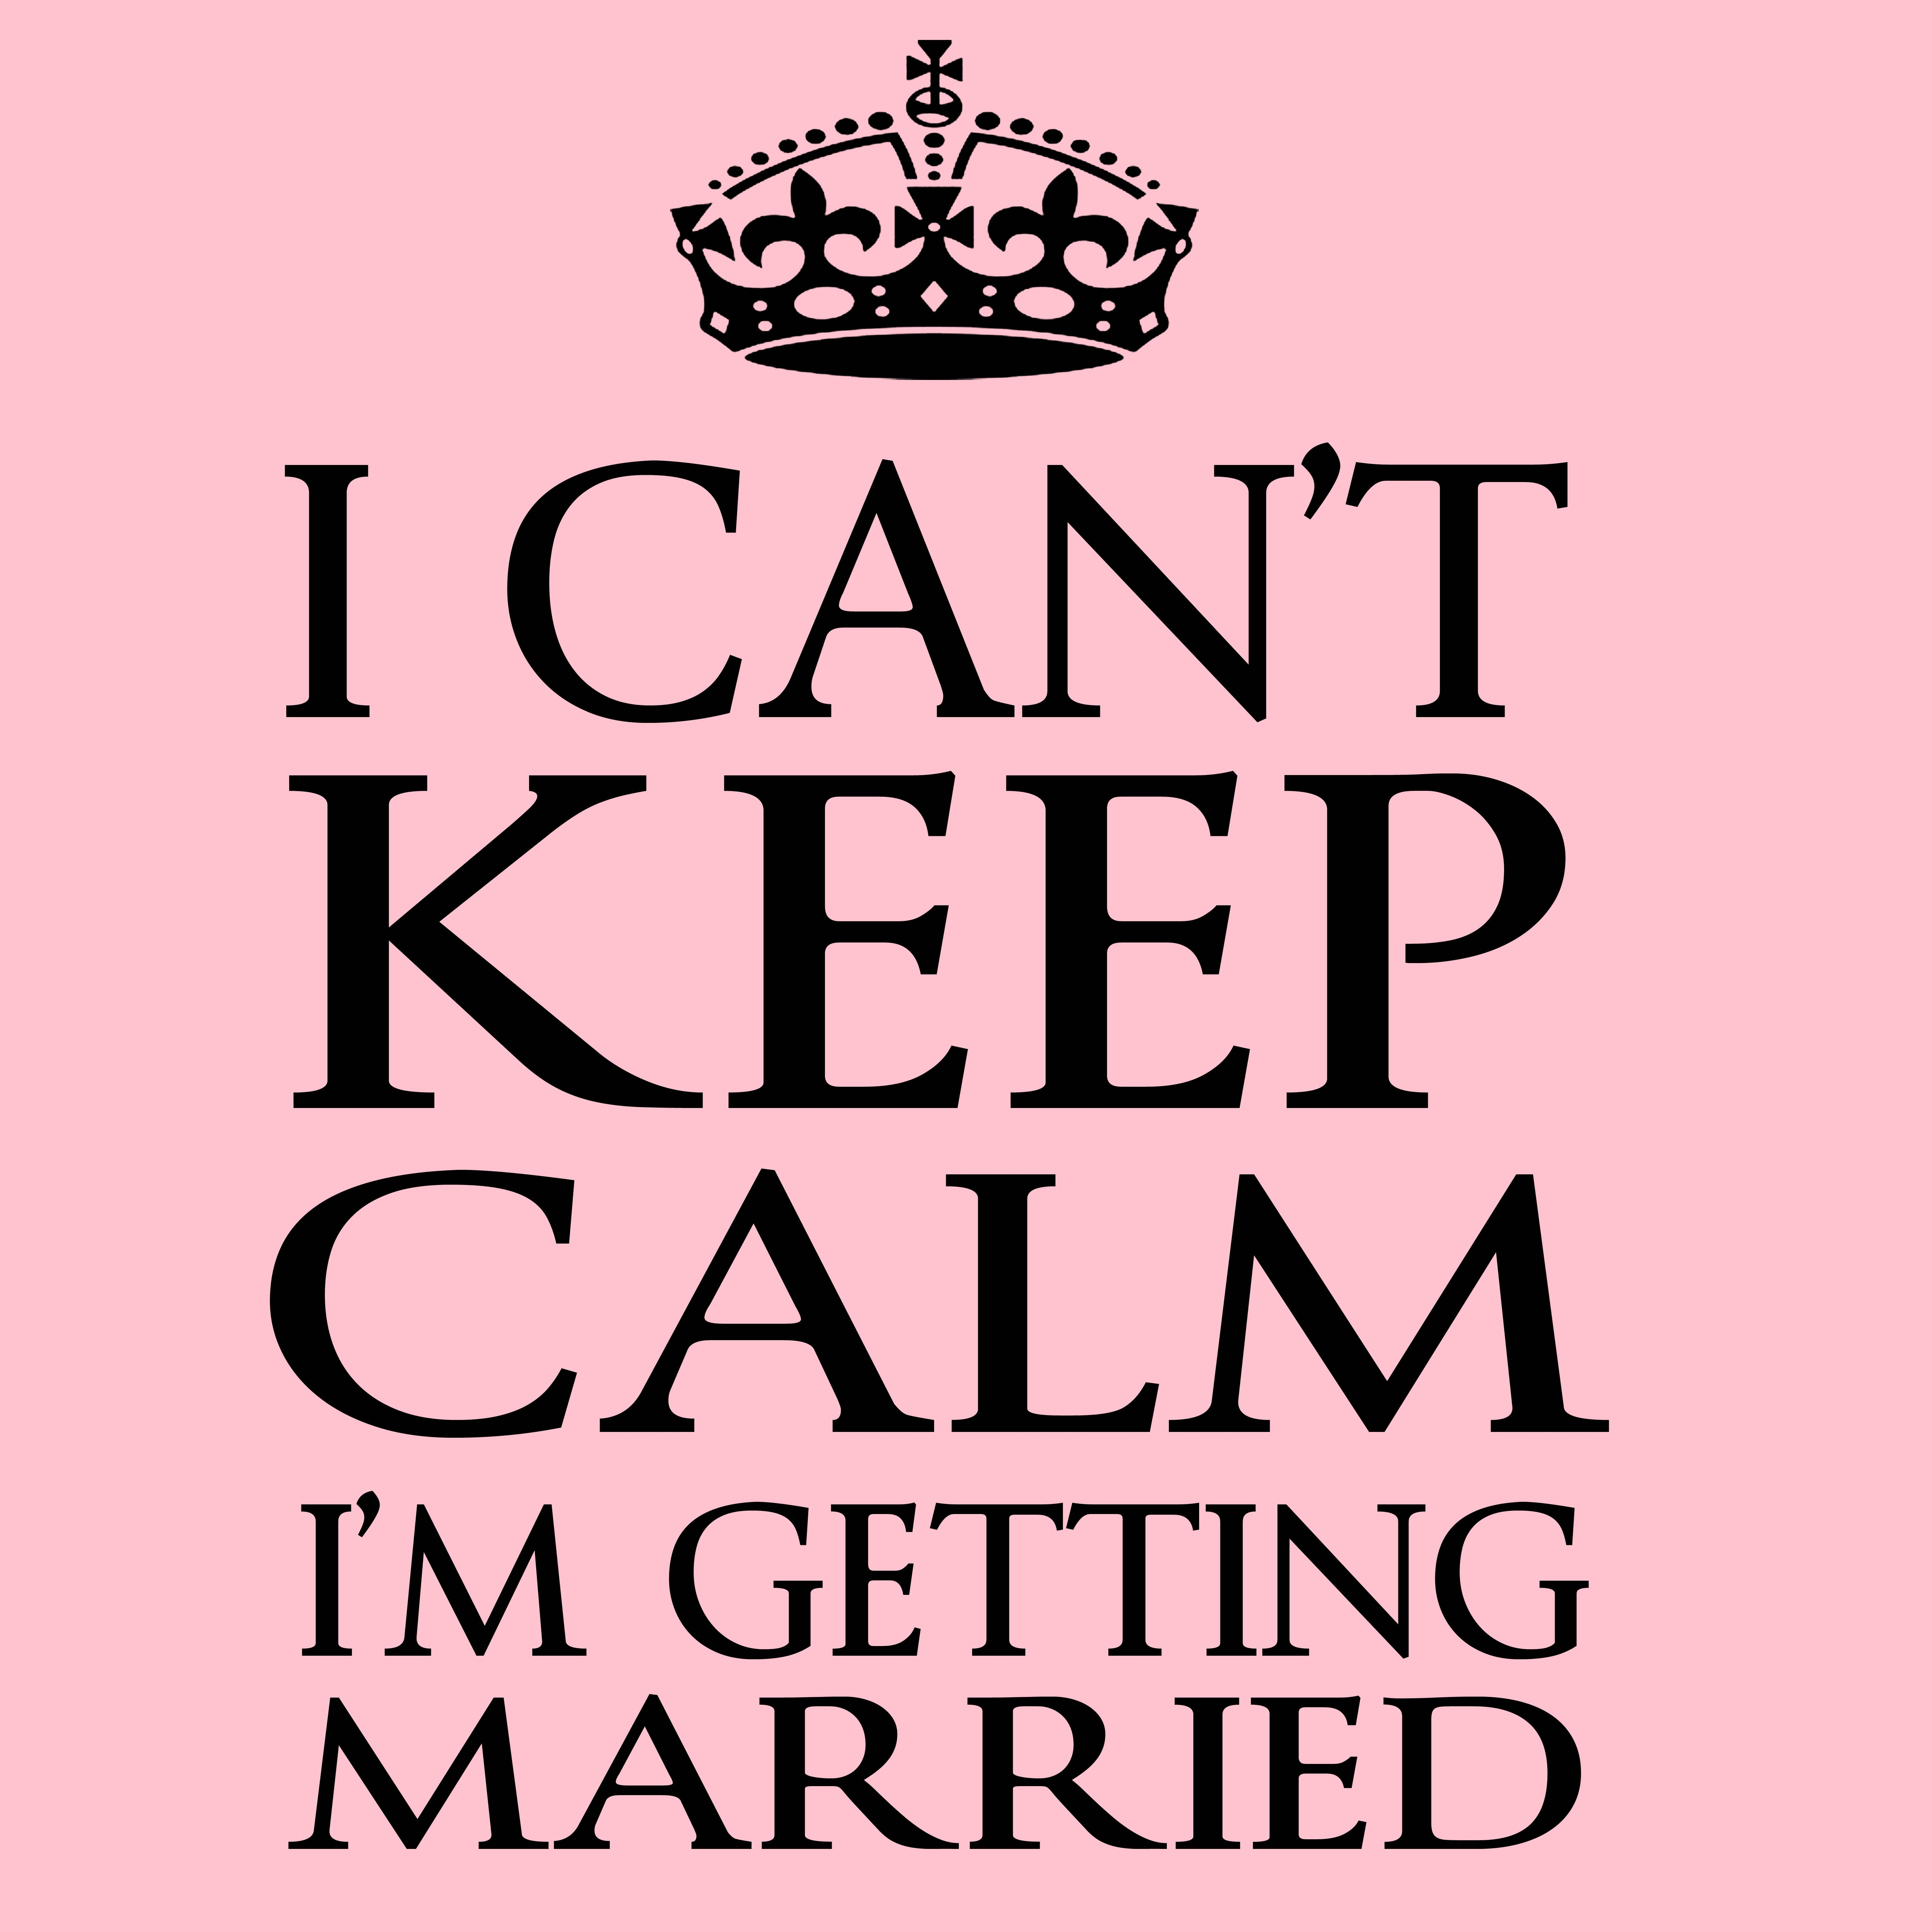 Getting Married Quotes: I Can't Keep Calm I'm Getting Married